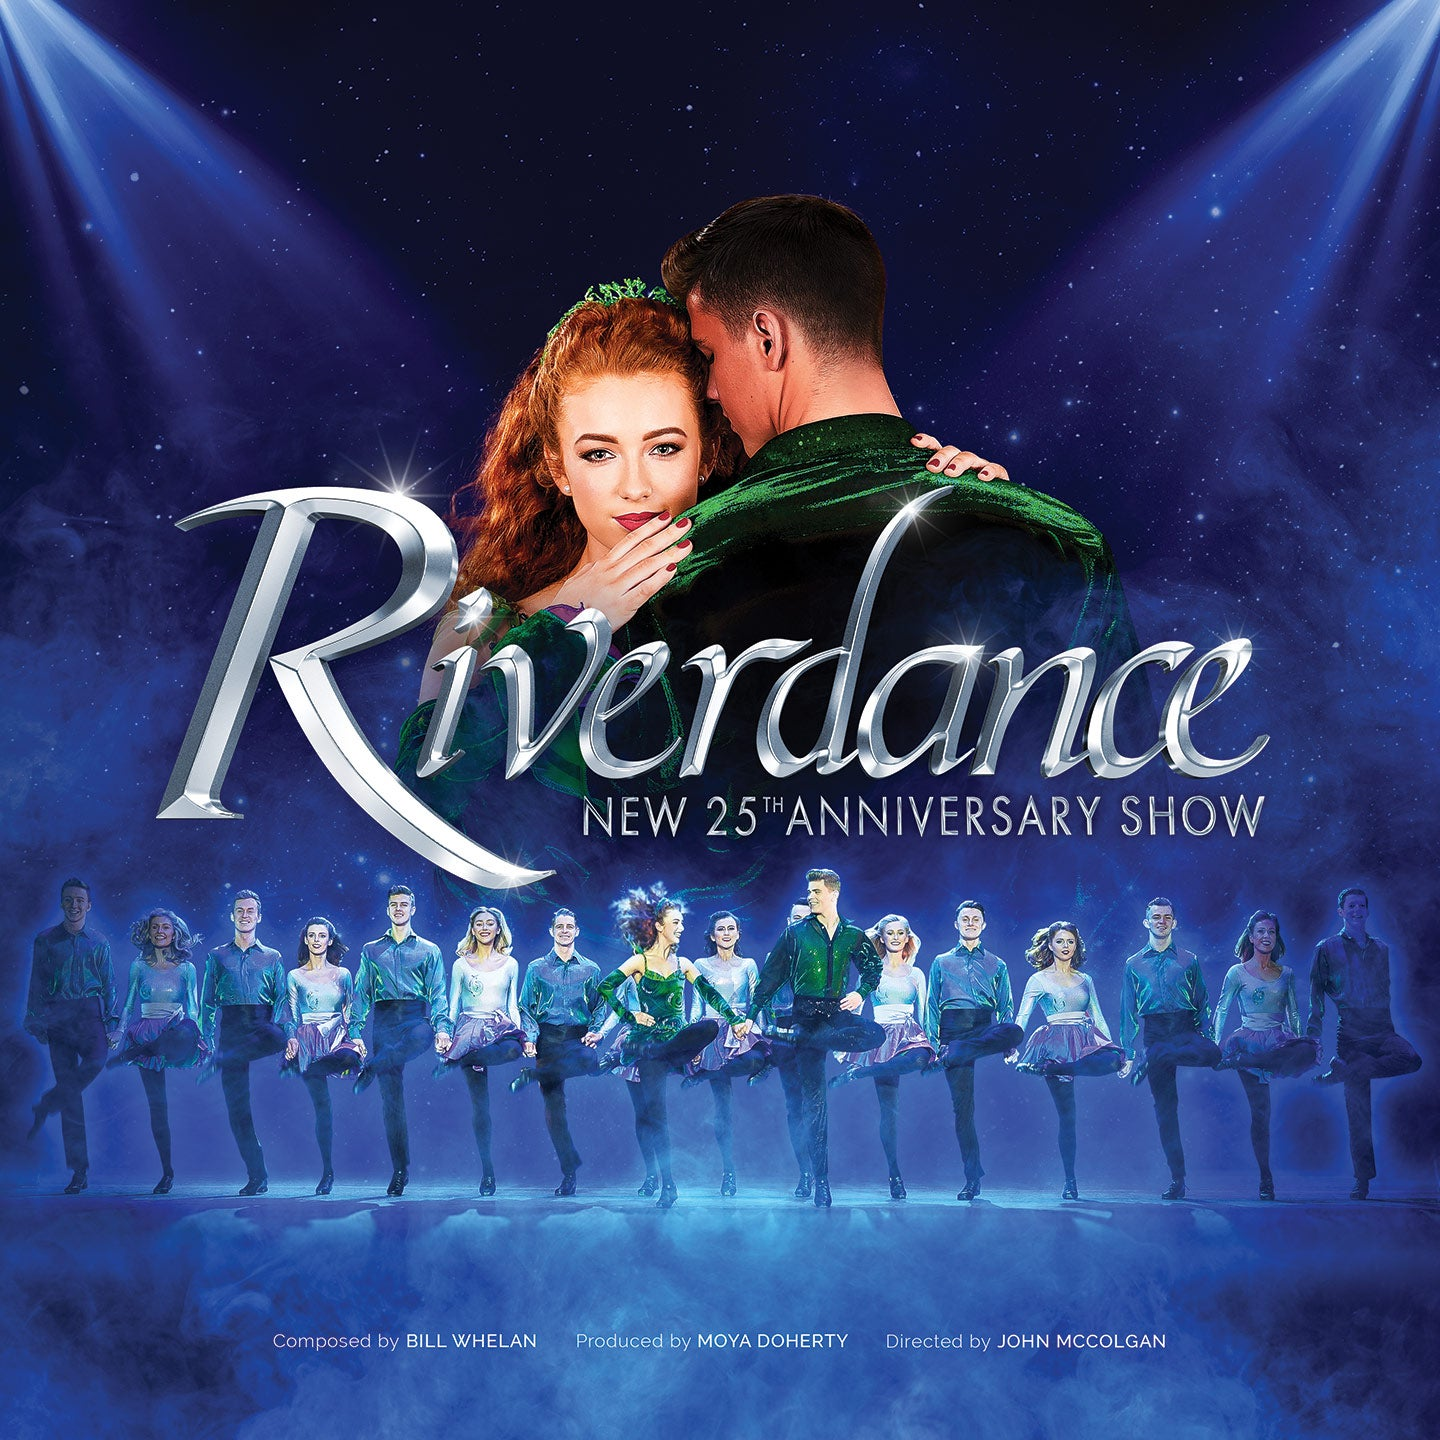 Riverdance New 25th Anniversary Show